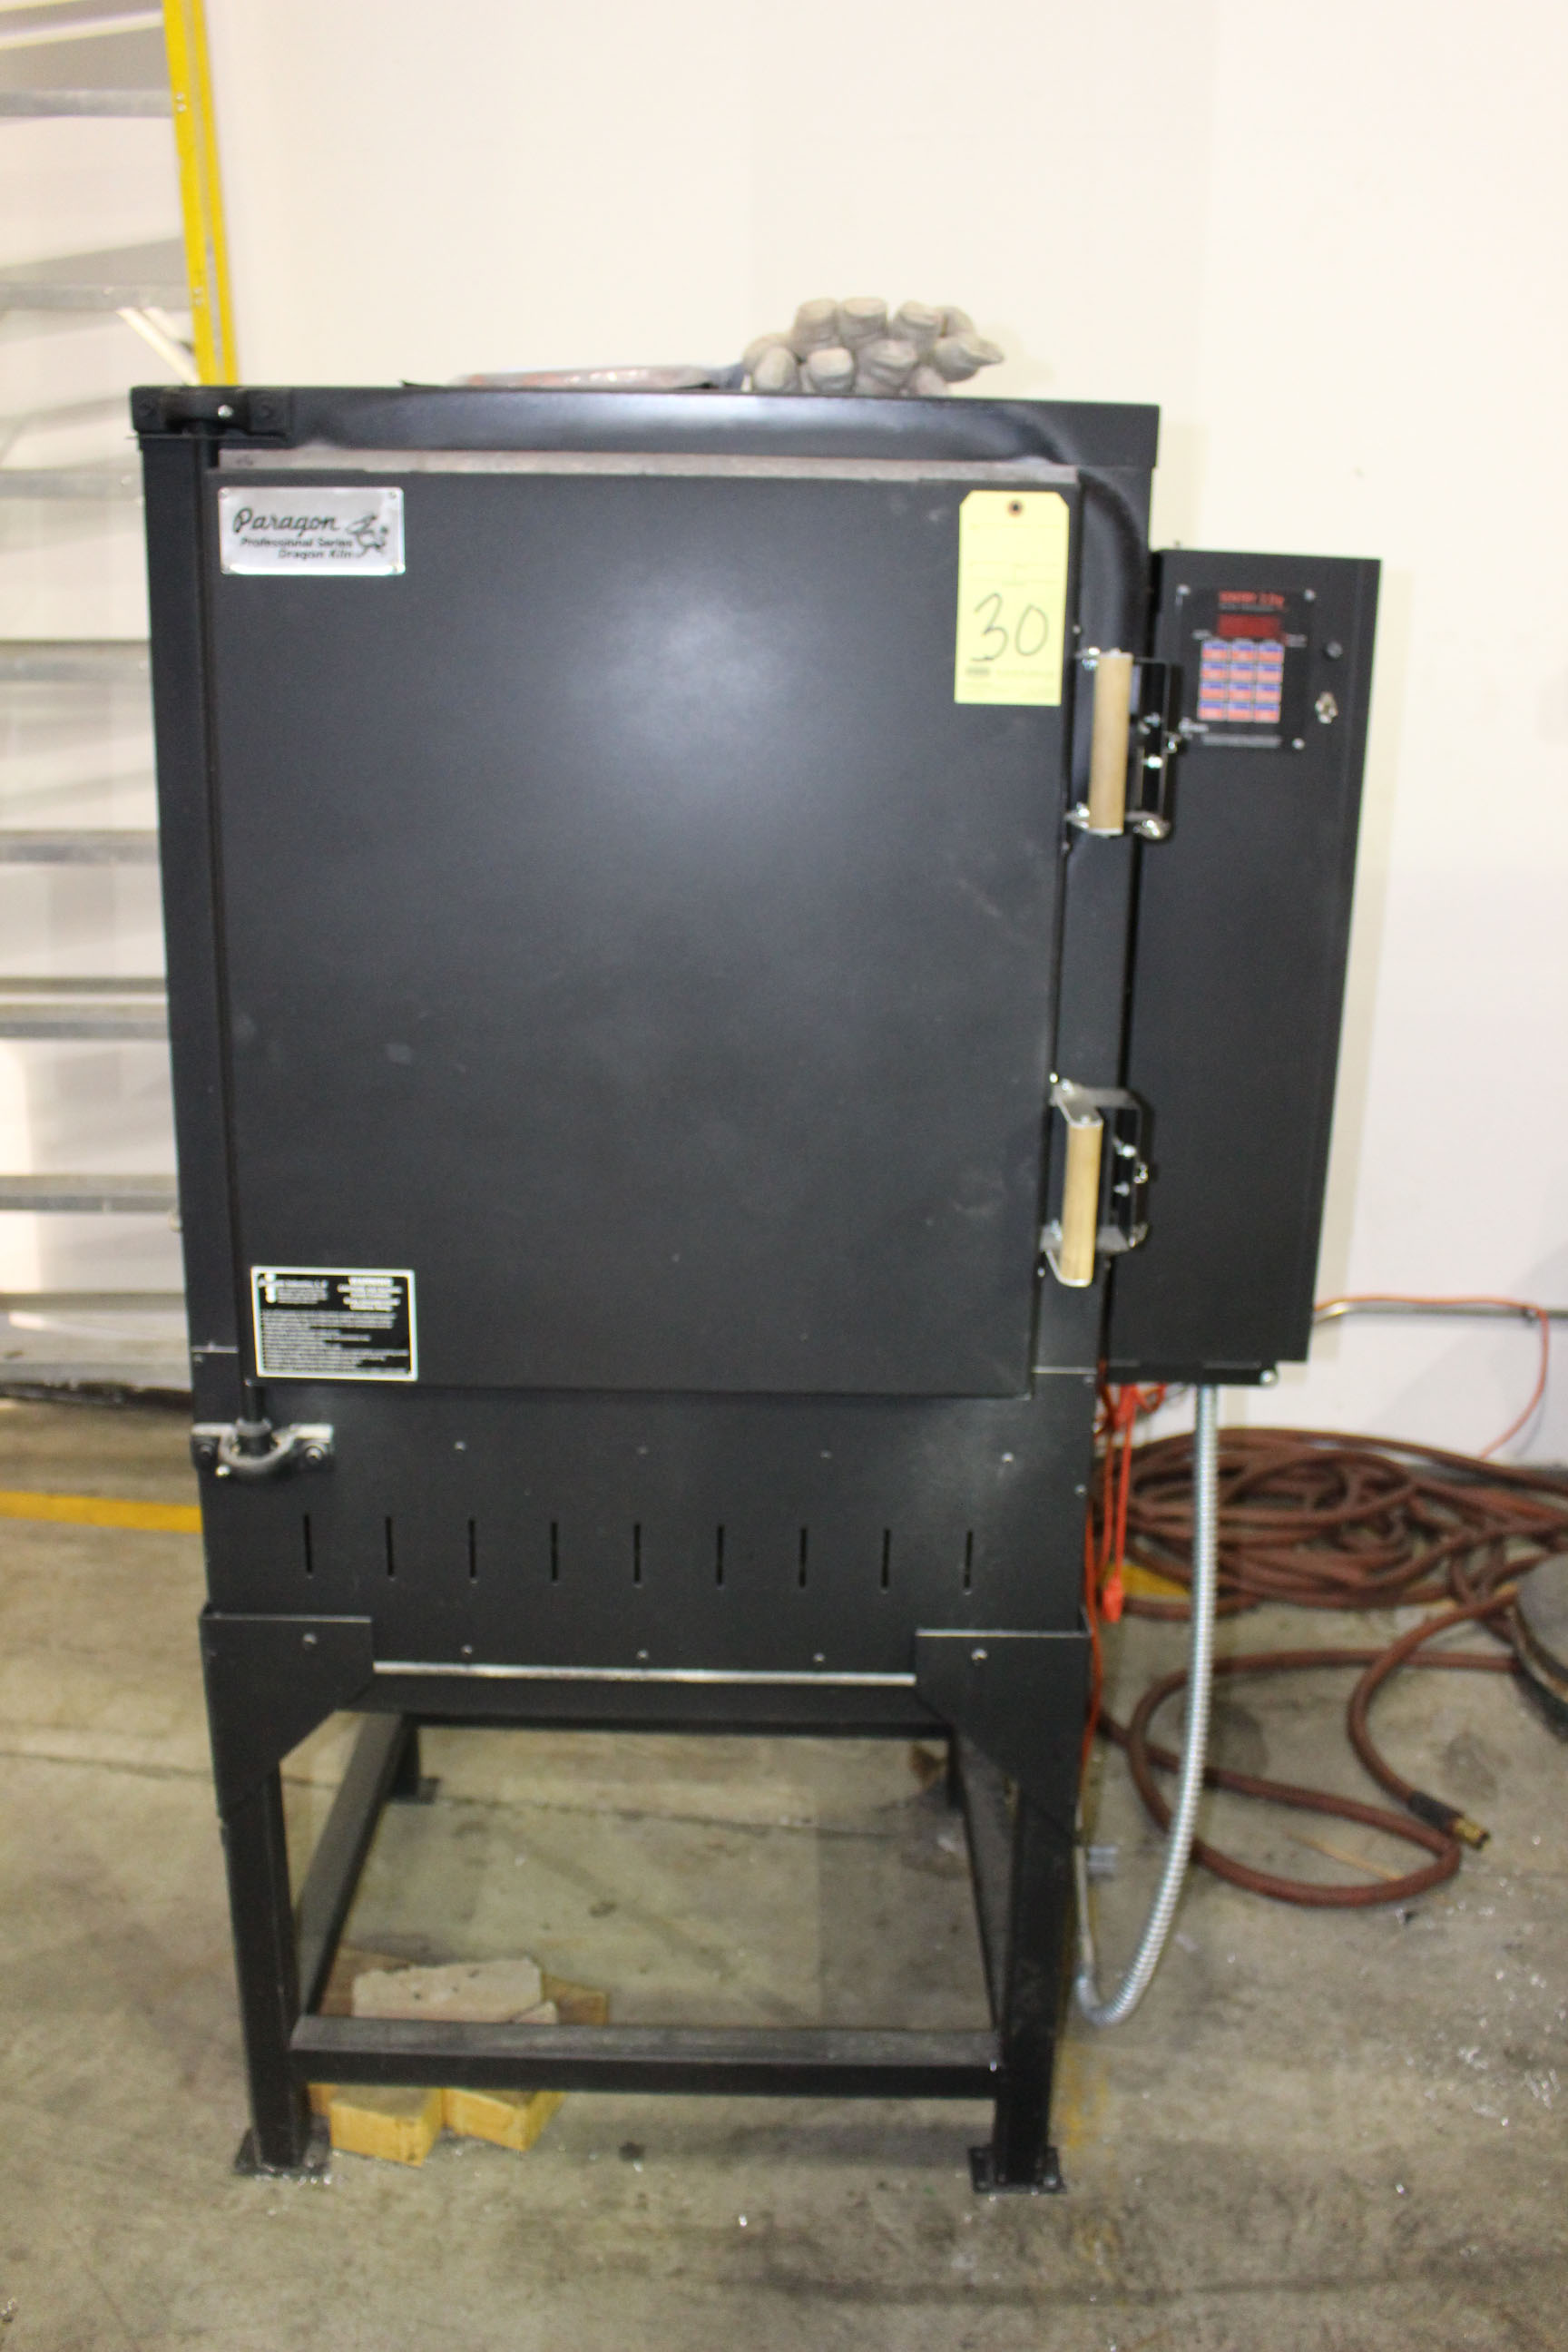 Lot 30 - CABINET KILN, PARAGON PROFESSIONAL SERIES DRAGON 24 MDL. 706111BACD, Sentry 2.0 microprocessor, 2,